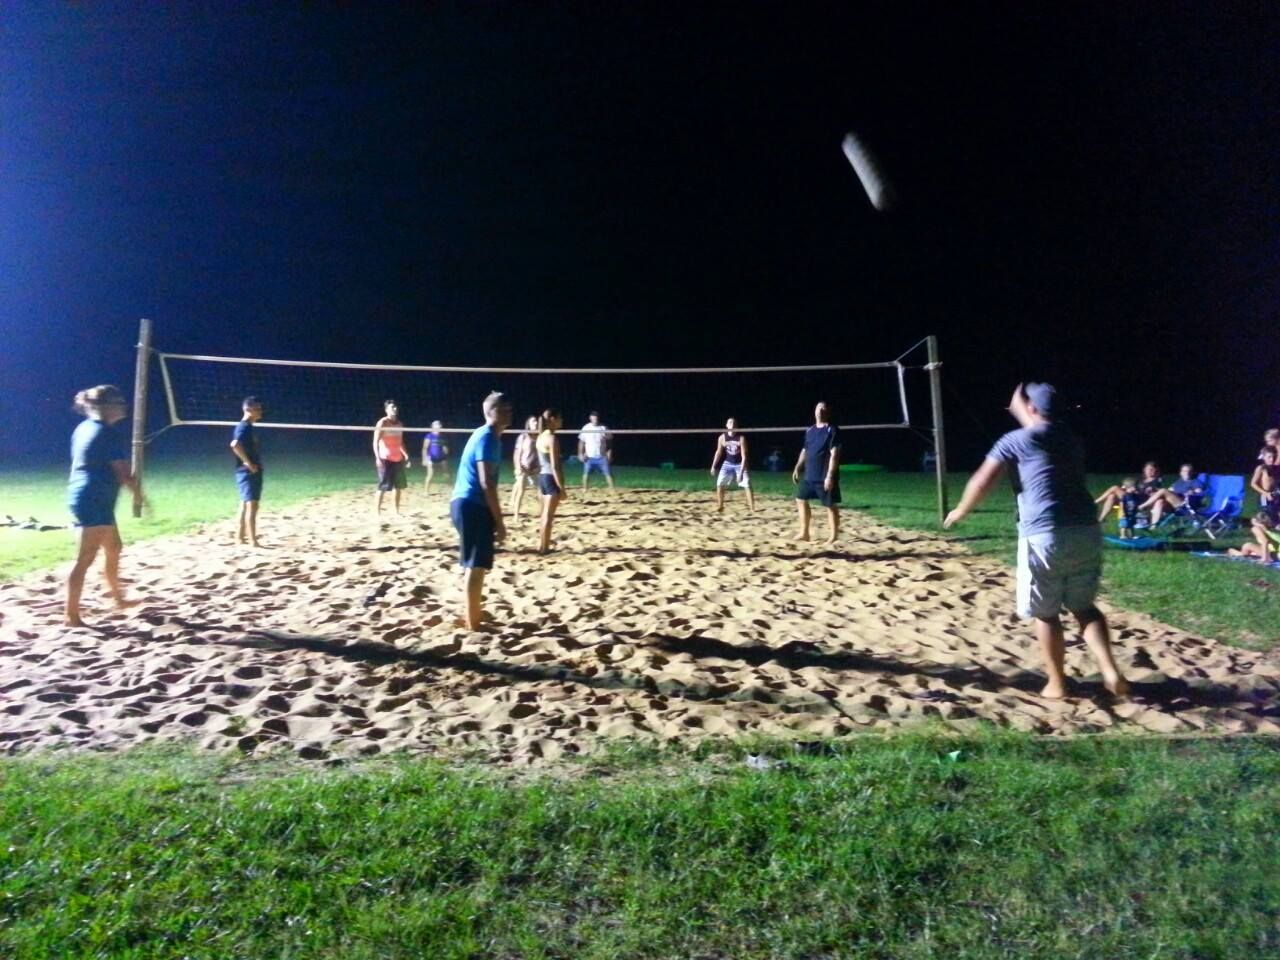 A Popular Night Time Sport Is Volleyball On Our Sand Court At Marina Village Resort On Lake Livingston Tri Stay The Night Sand Volleyball Court Marina Village